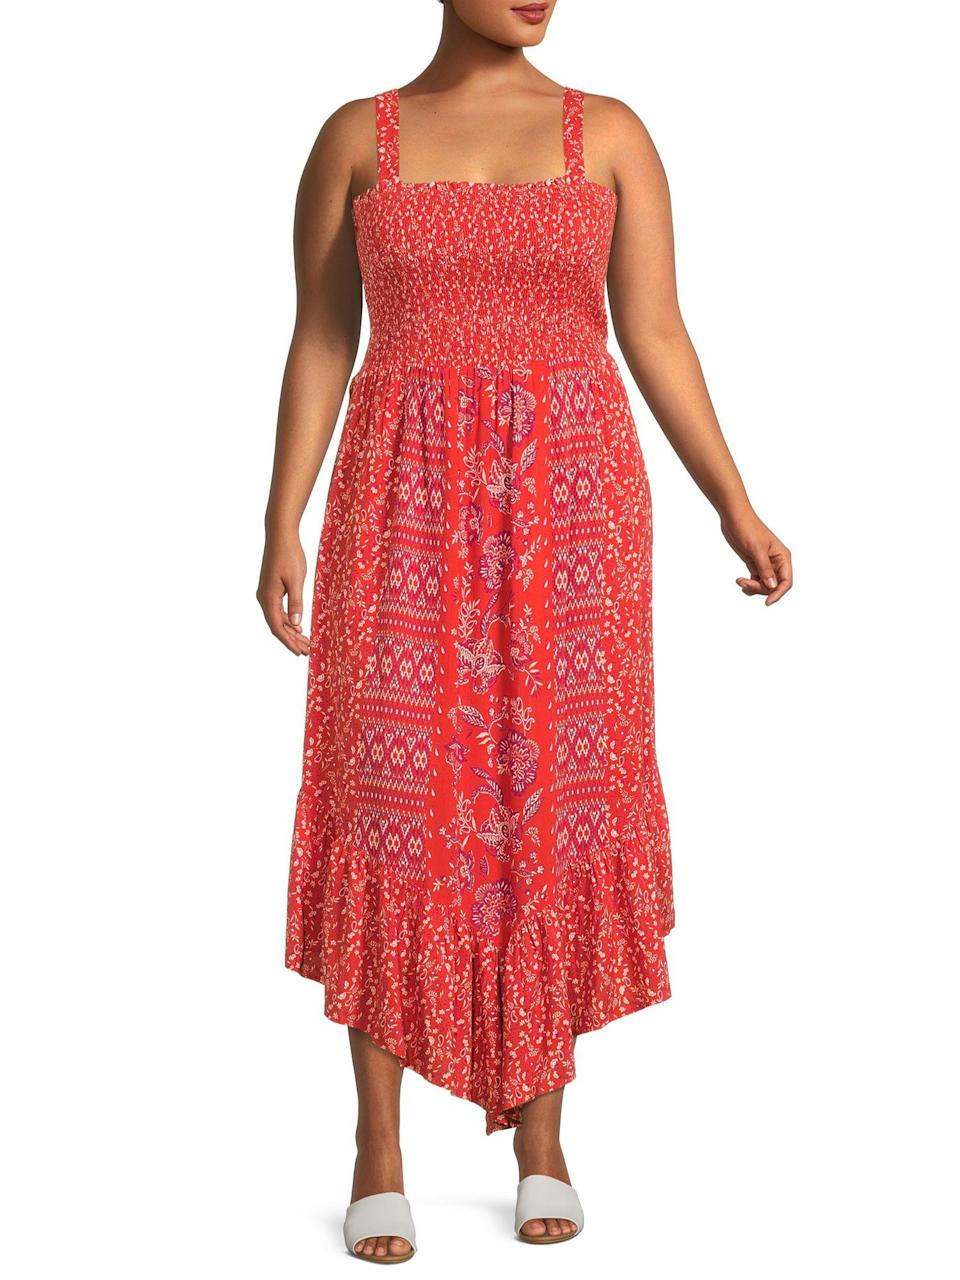 """<p><strong>Romantic Gypsy</strong></p><p>walmart.com</p><p><strong>$32.50</strong></p><p><a href=""""https://go.redirectingat.com?id=74968X1596630&url=https%3A%2F%2Fwww.walmart.com%2Fip%2F412417939&sref=https%3A%2F%2Fwww.oprahdaily.com%2Fstyle%2Fg32465022%2Fplus-size-maxi-dresses%2F"""" rel=""""nofollow noopener"""" target=""""_blank"""" data-ylk=""""slk:SHOP NOW"""" class=""""link rapid-noclick-resp"""">SHOP NOW</a></p><p>A handkerchief hem and smocking add extra interest to this global-inspired print dress.</p>"""